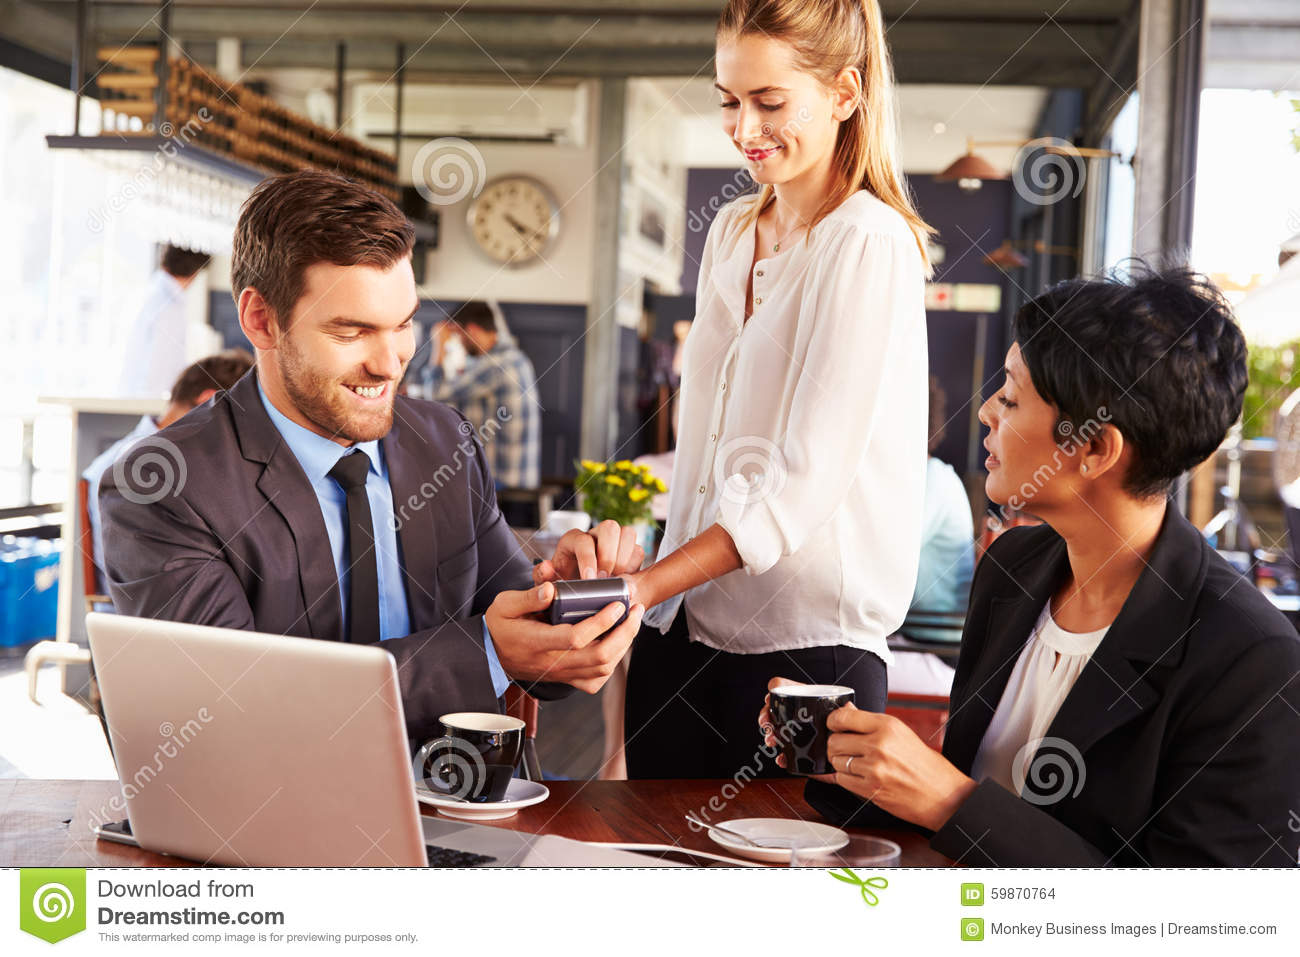 Businessman making credit card payment in a cafe